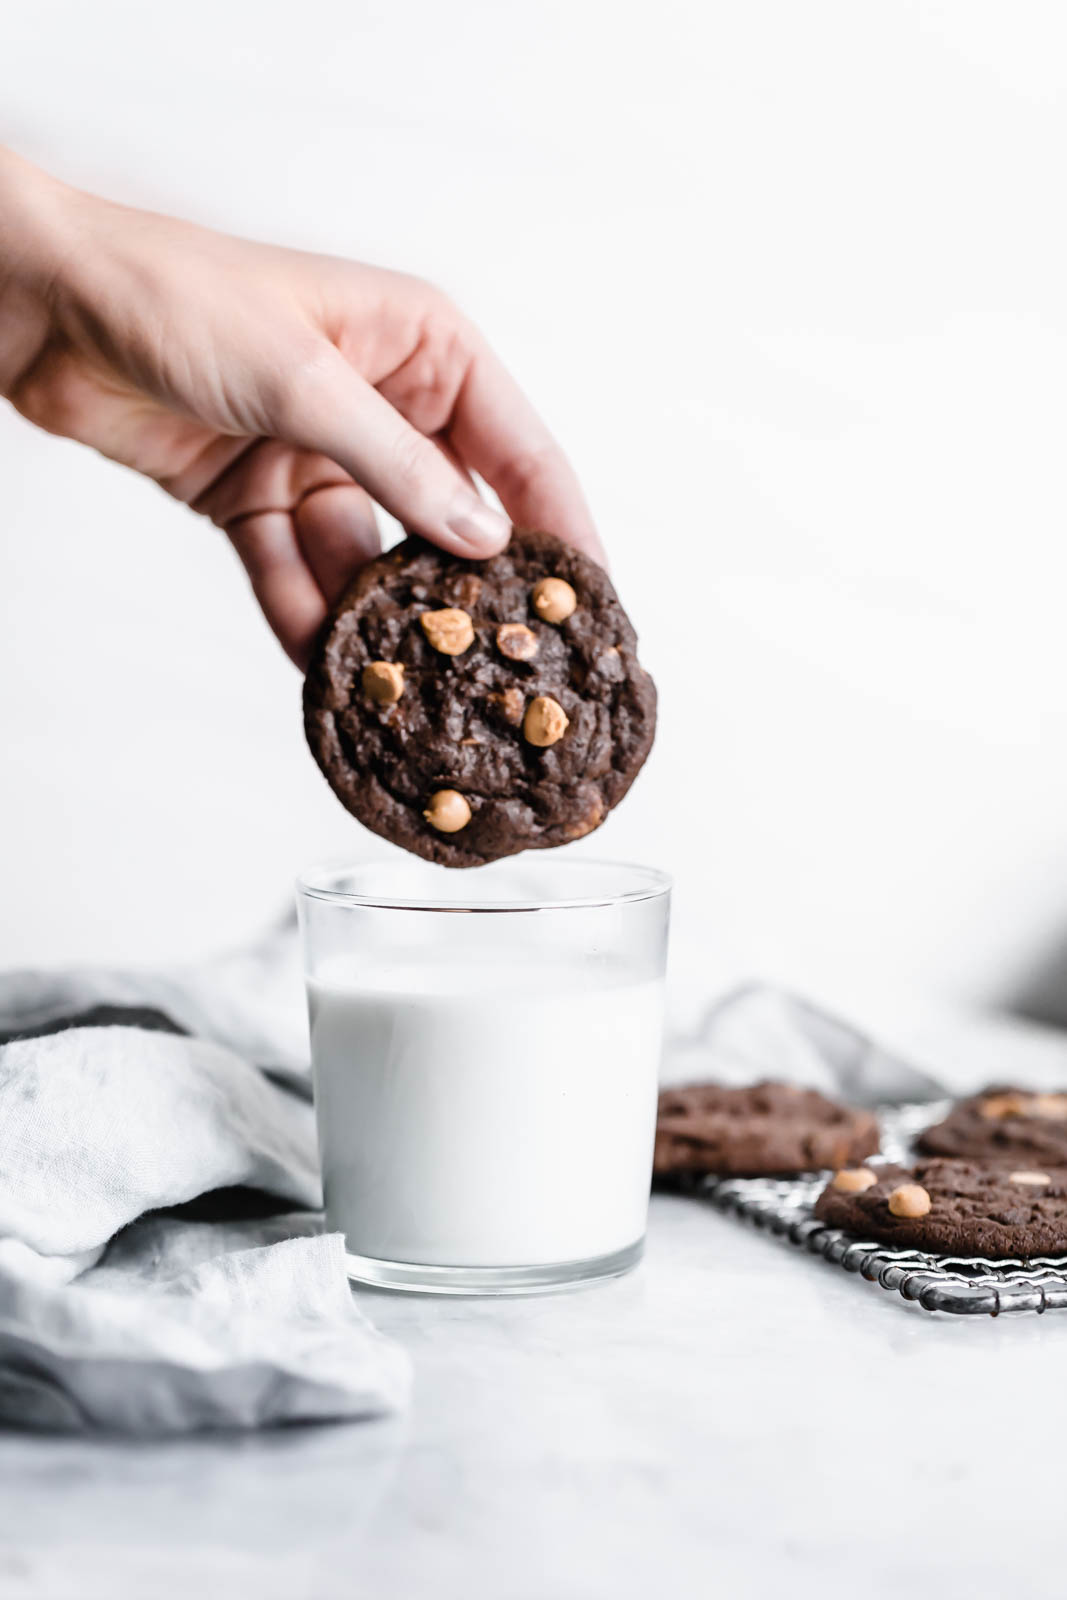 dunking Chocolate Peanut Butter Chip Cookie into glass of milk